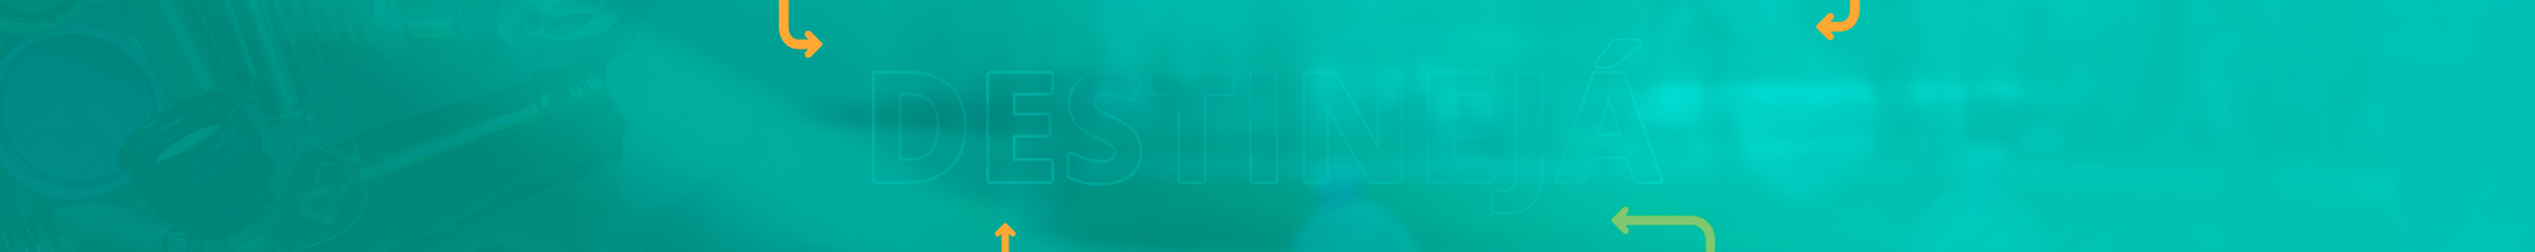 BANNER SITE.png